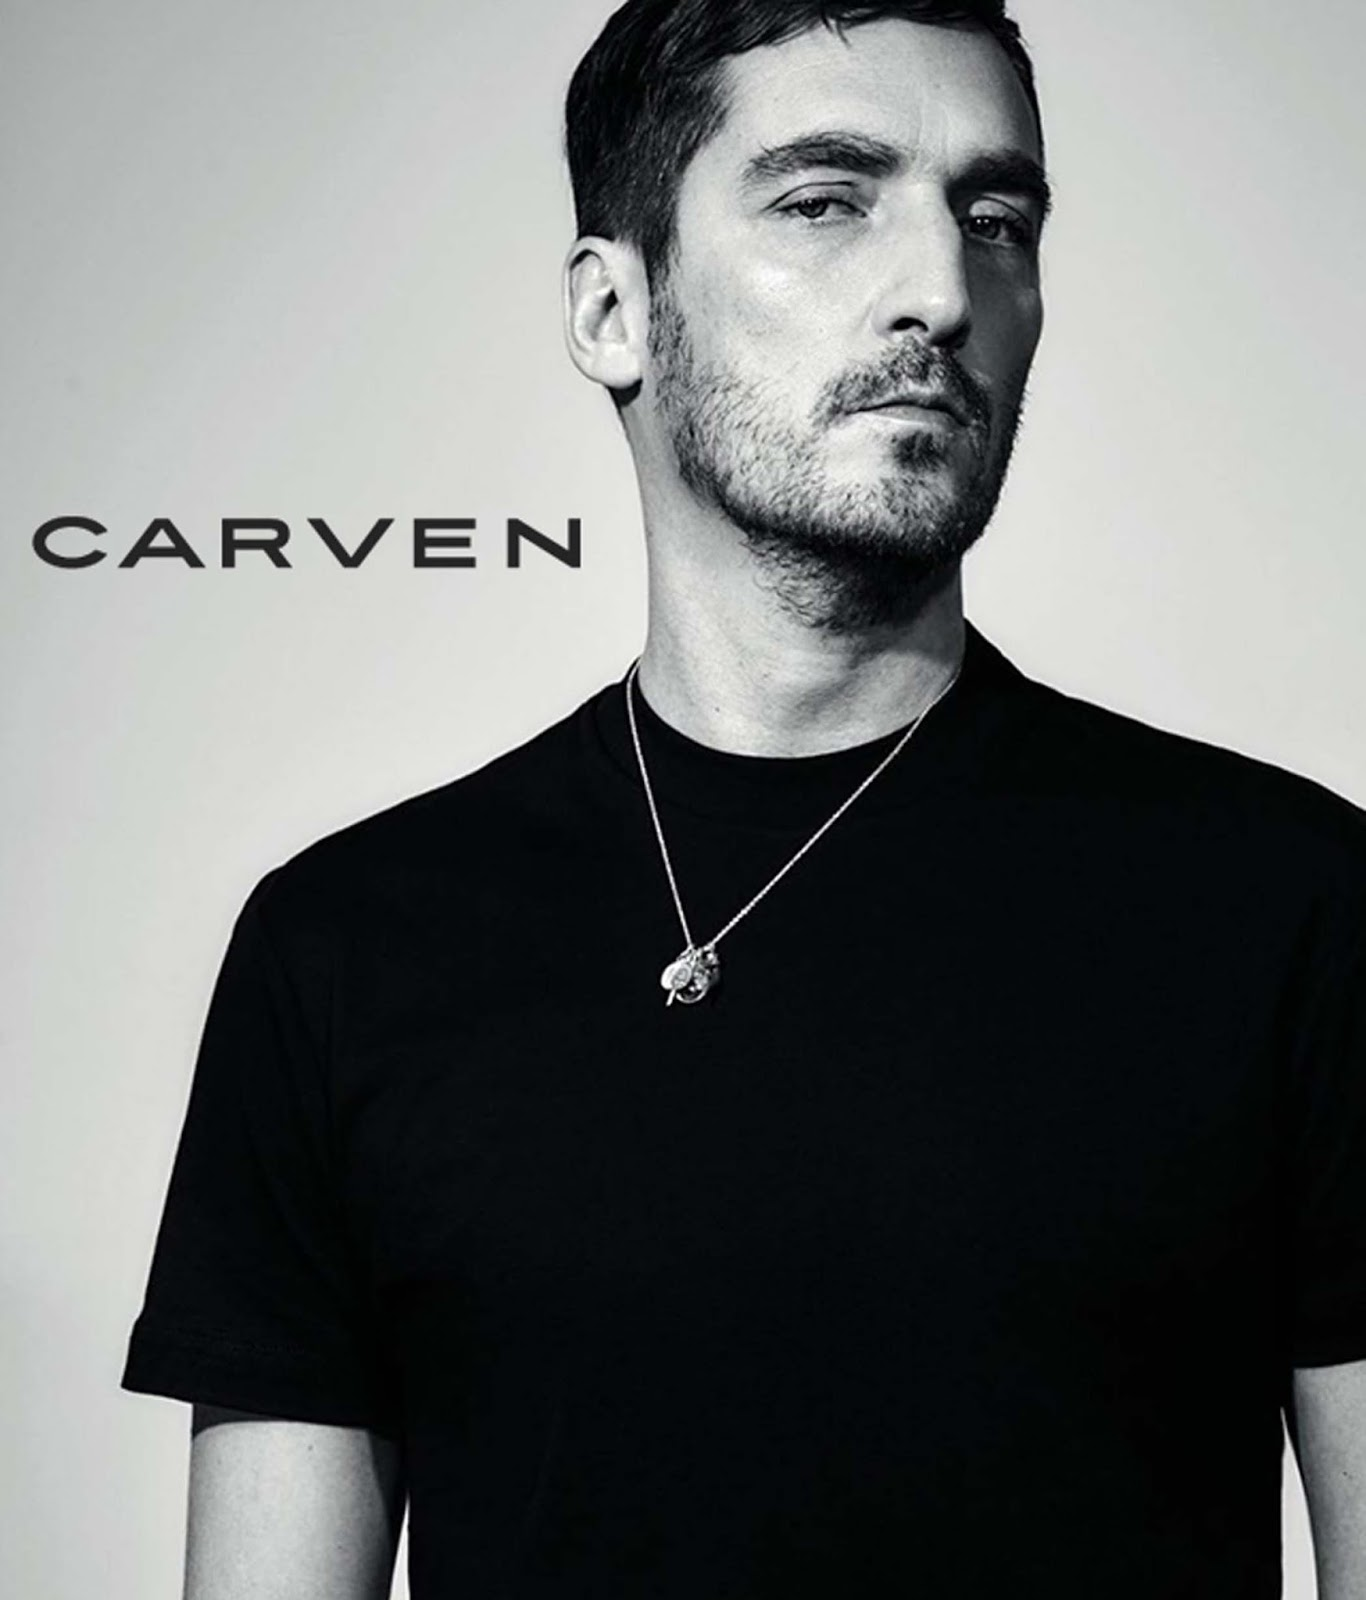 Eniwhere Fashion - News on Fashion - Serge Ruffieux - Carven